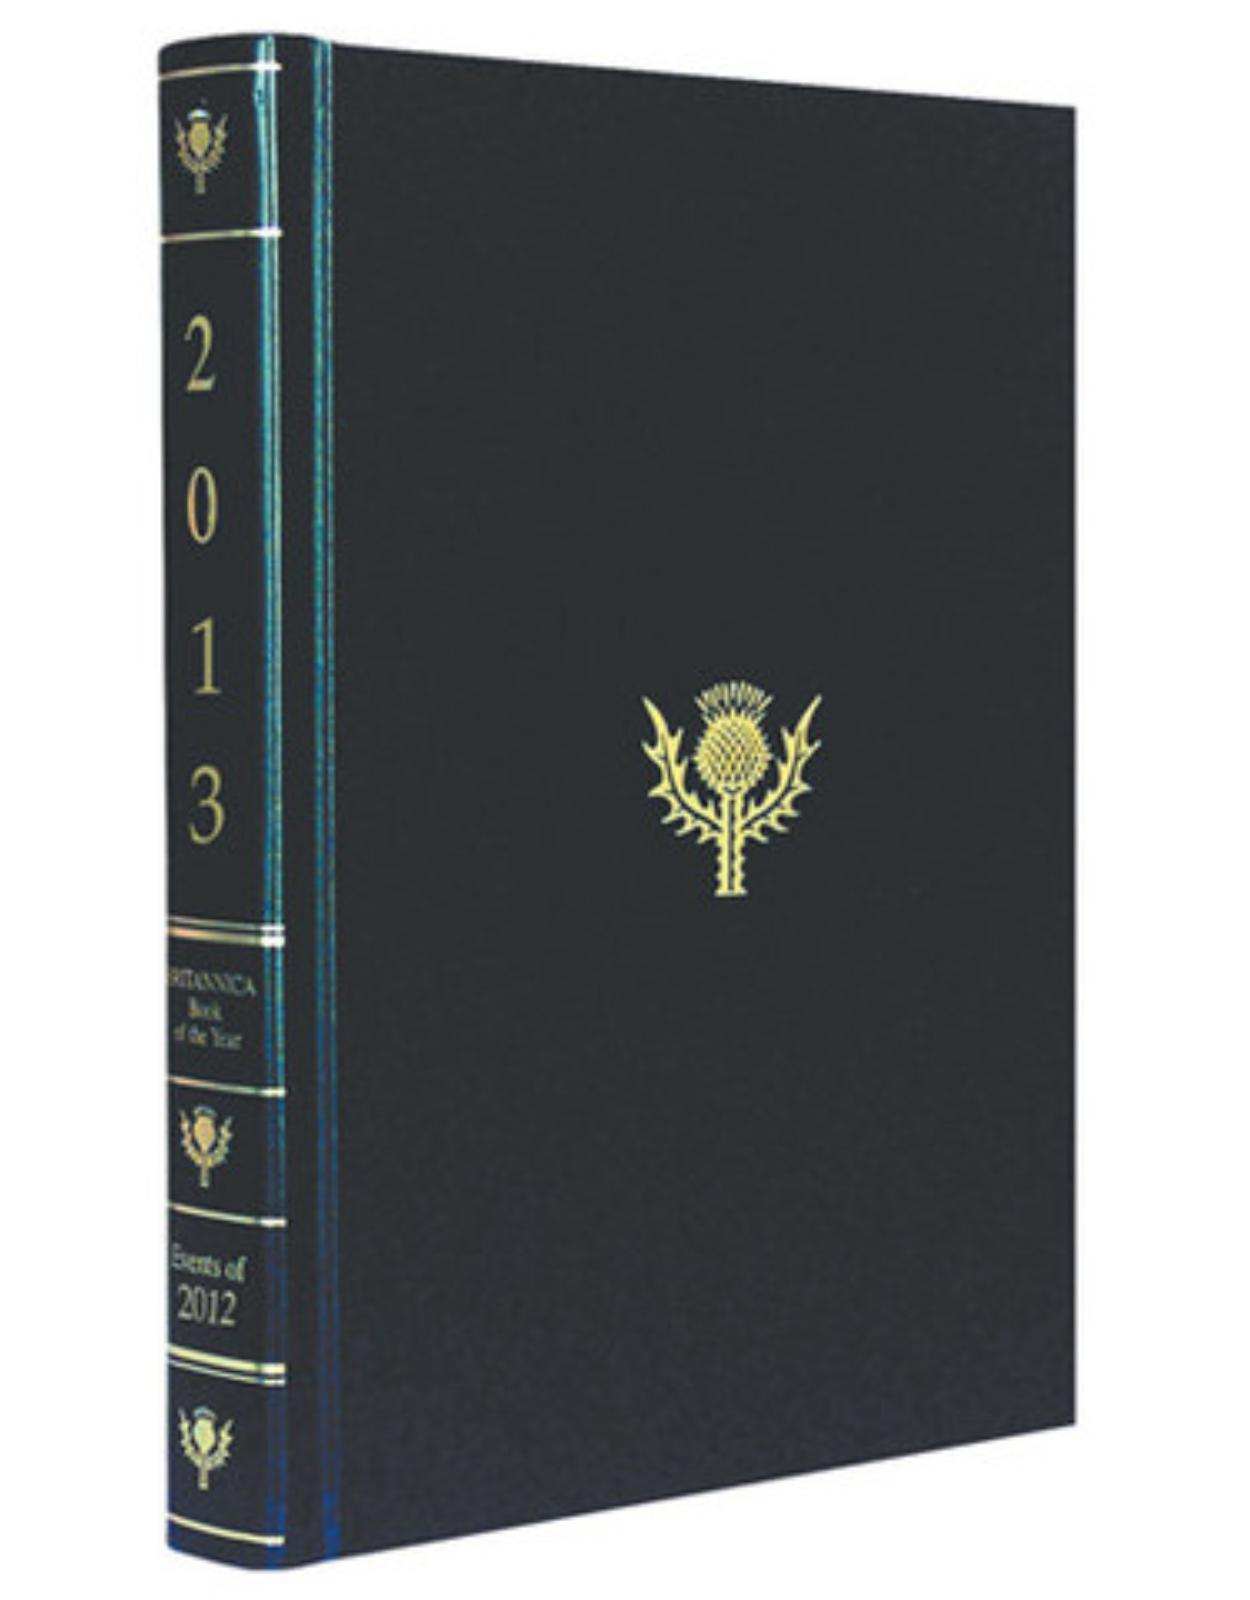 Britannica Book of Year Black Paddled 2013